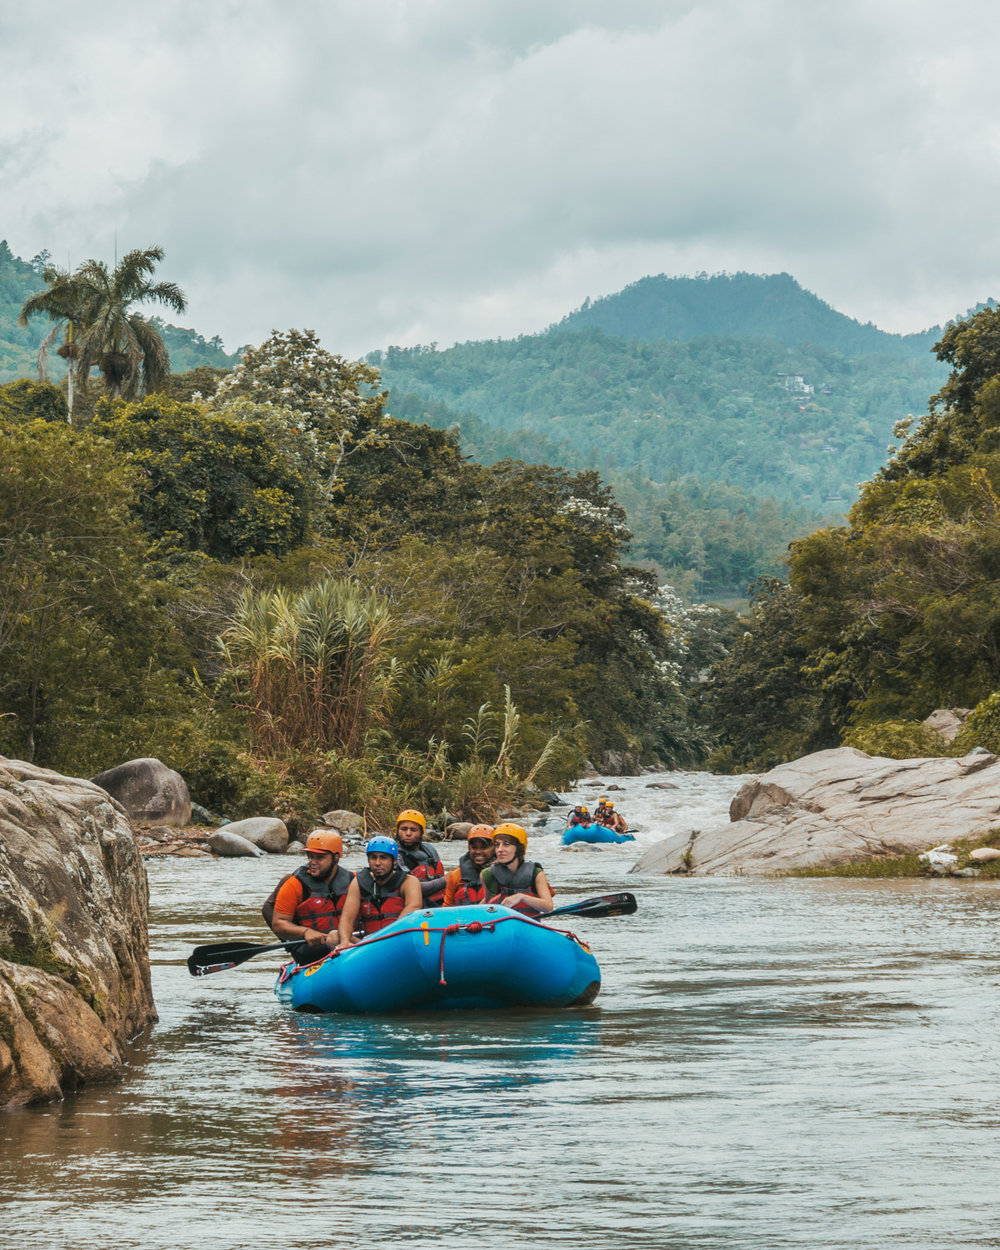 Whitewater Rafting // The Adventure Guide to Jarabacoa, Dominican Republic #readysetjetset #travel #bloggingtips #traveltips #caribbean